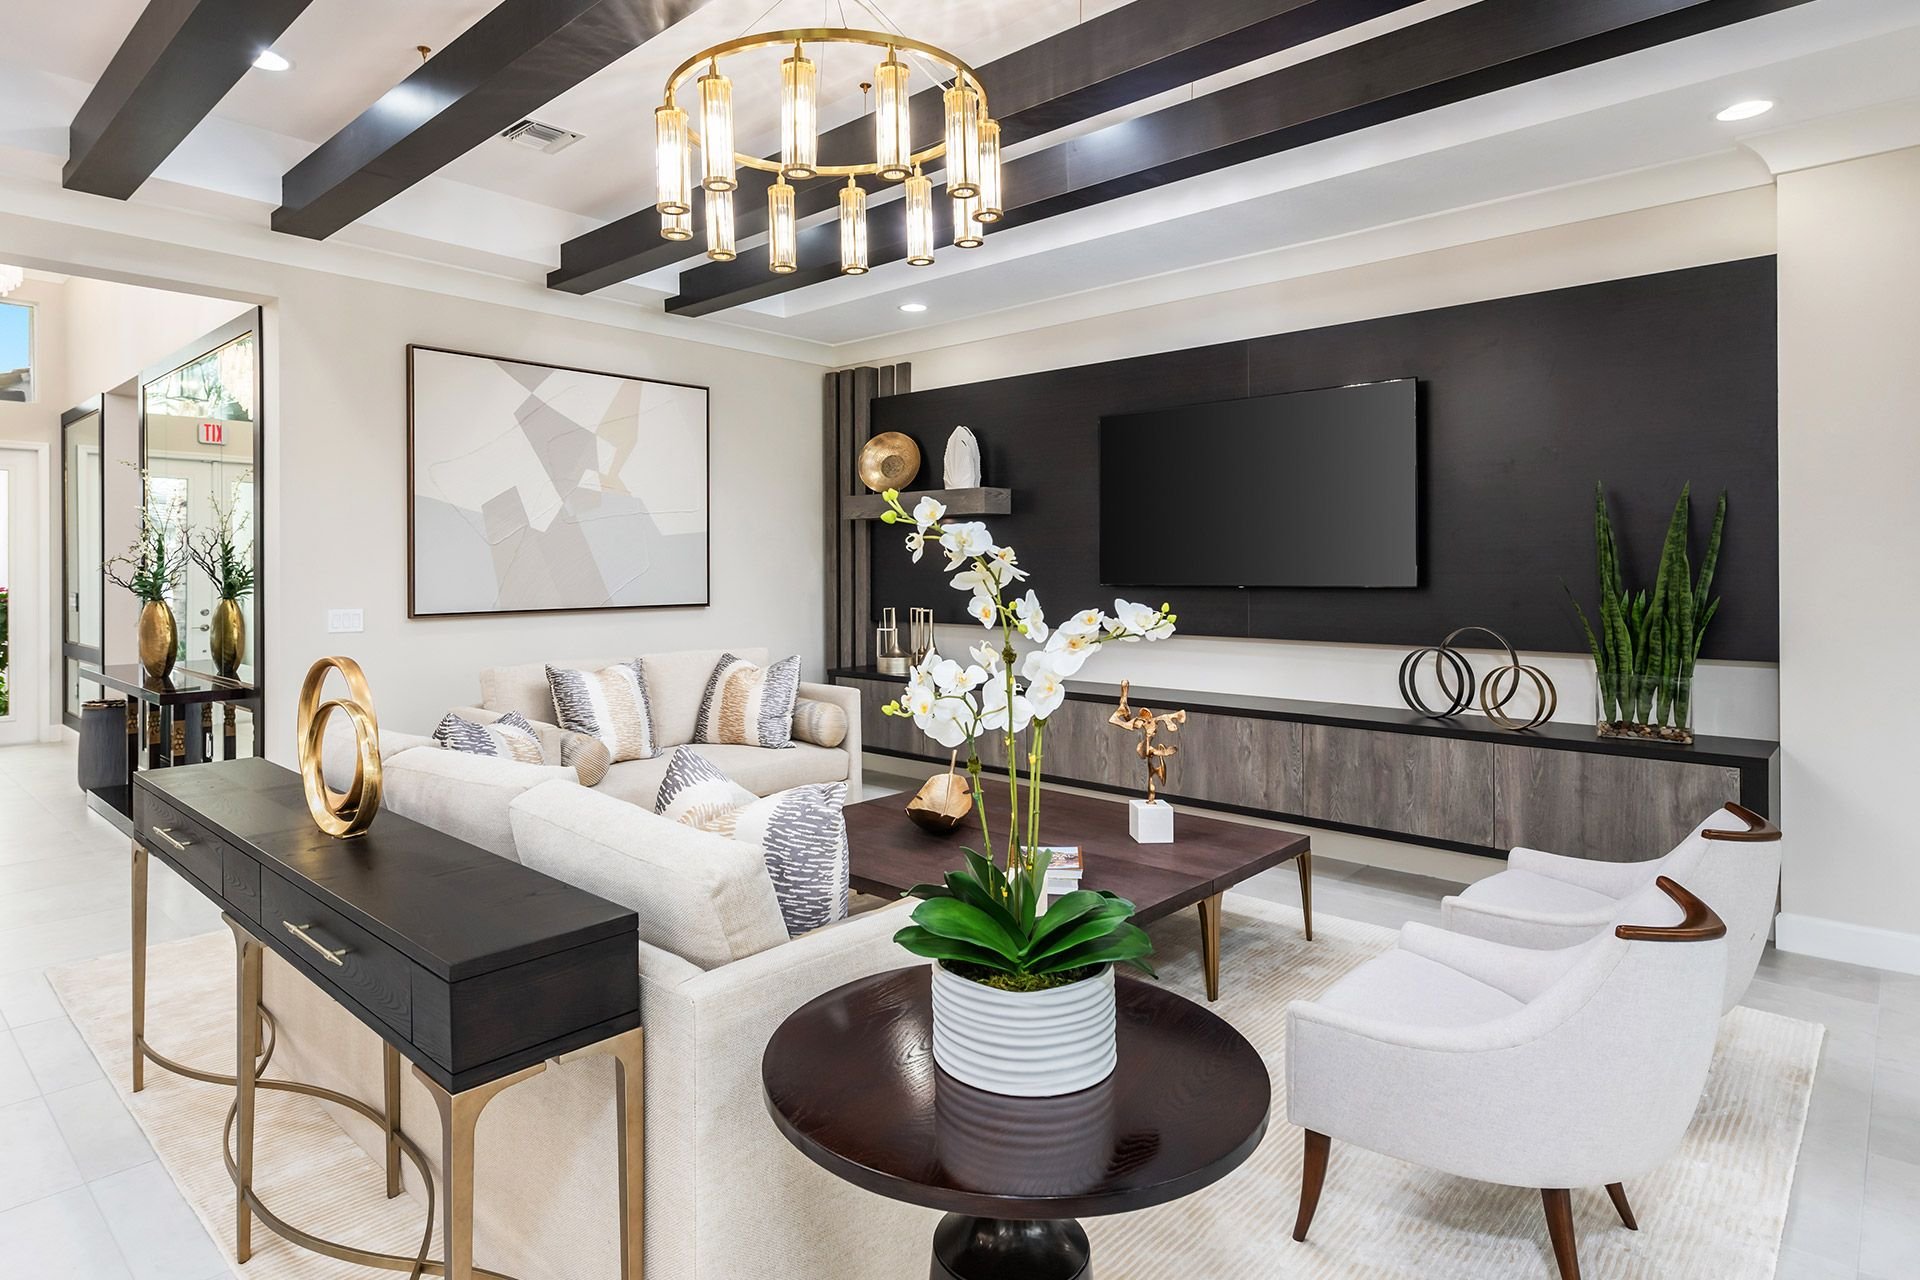 Living Area featured in the Sunrise By GL Homes in Naples, FL